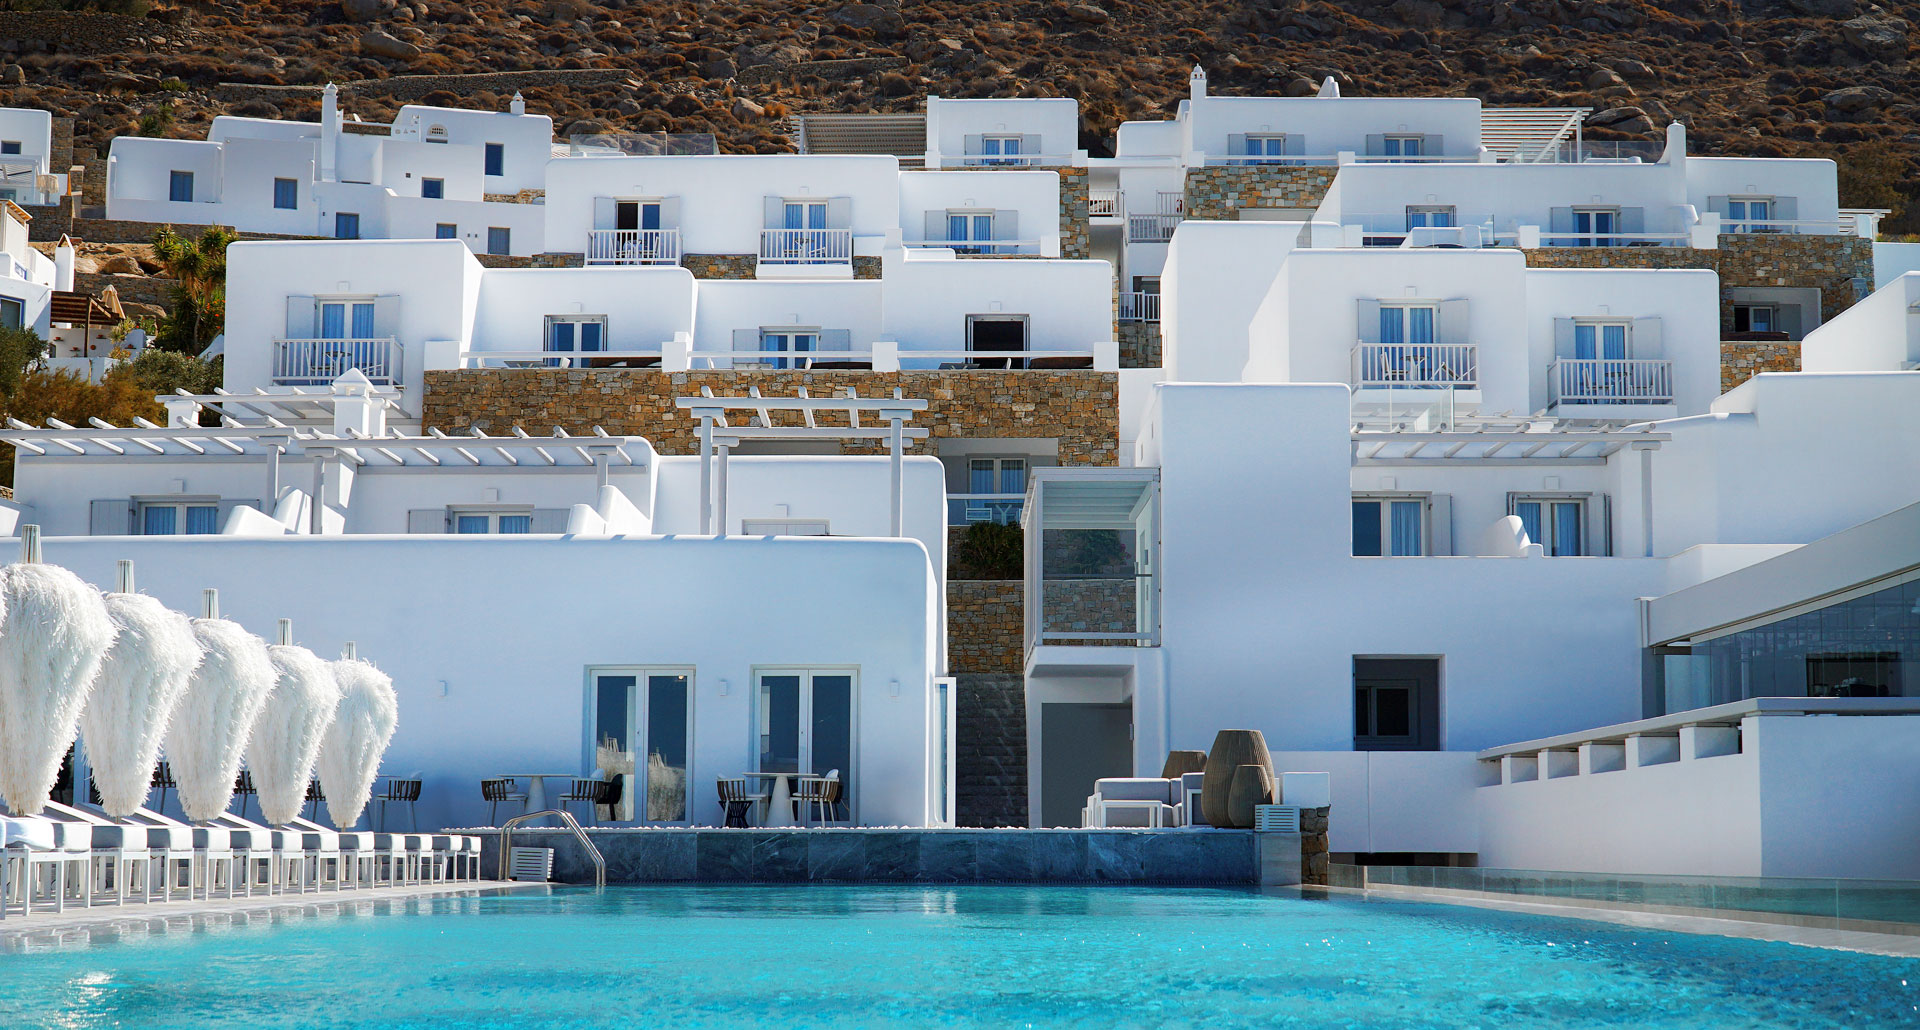 Mykonos Riviera Hotel & Spa - boutique hotel in Mykonos